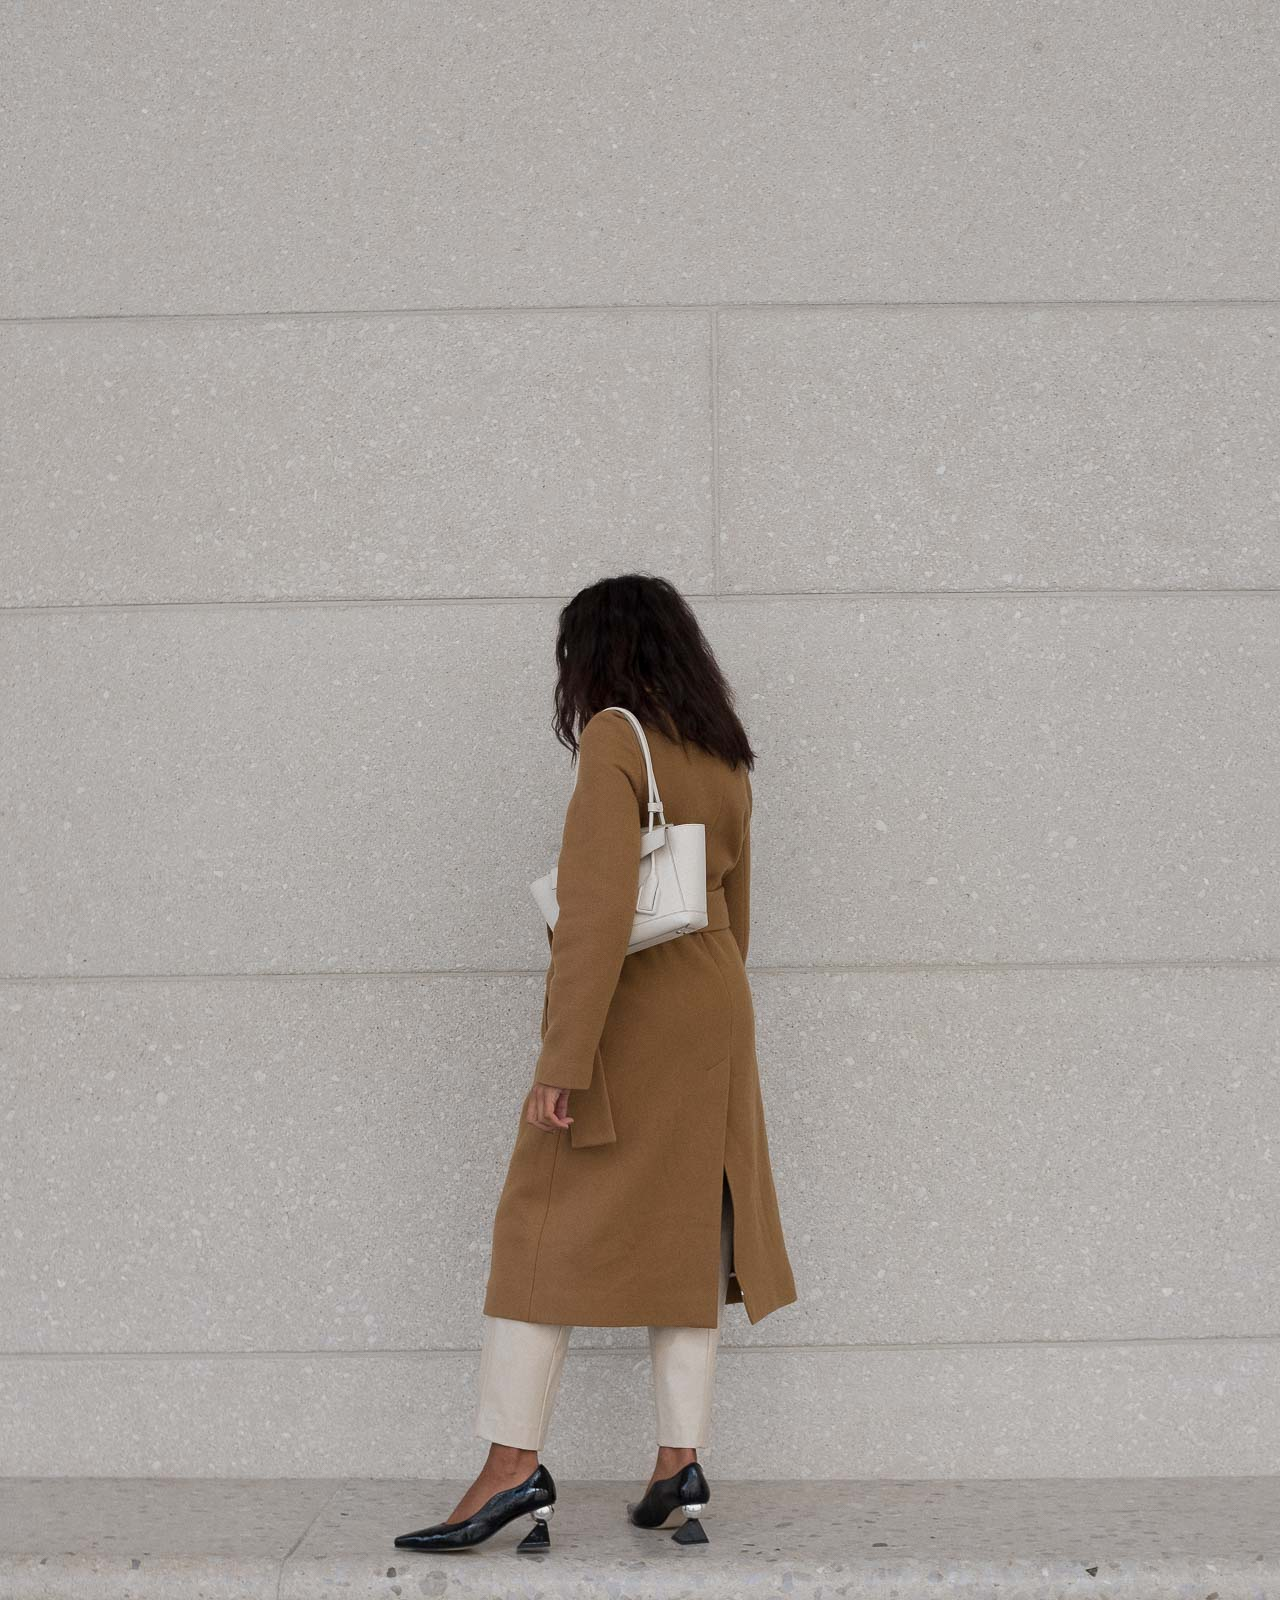 storm wears yuul yie black mules combined with camel coat from by malene birger